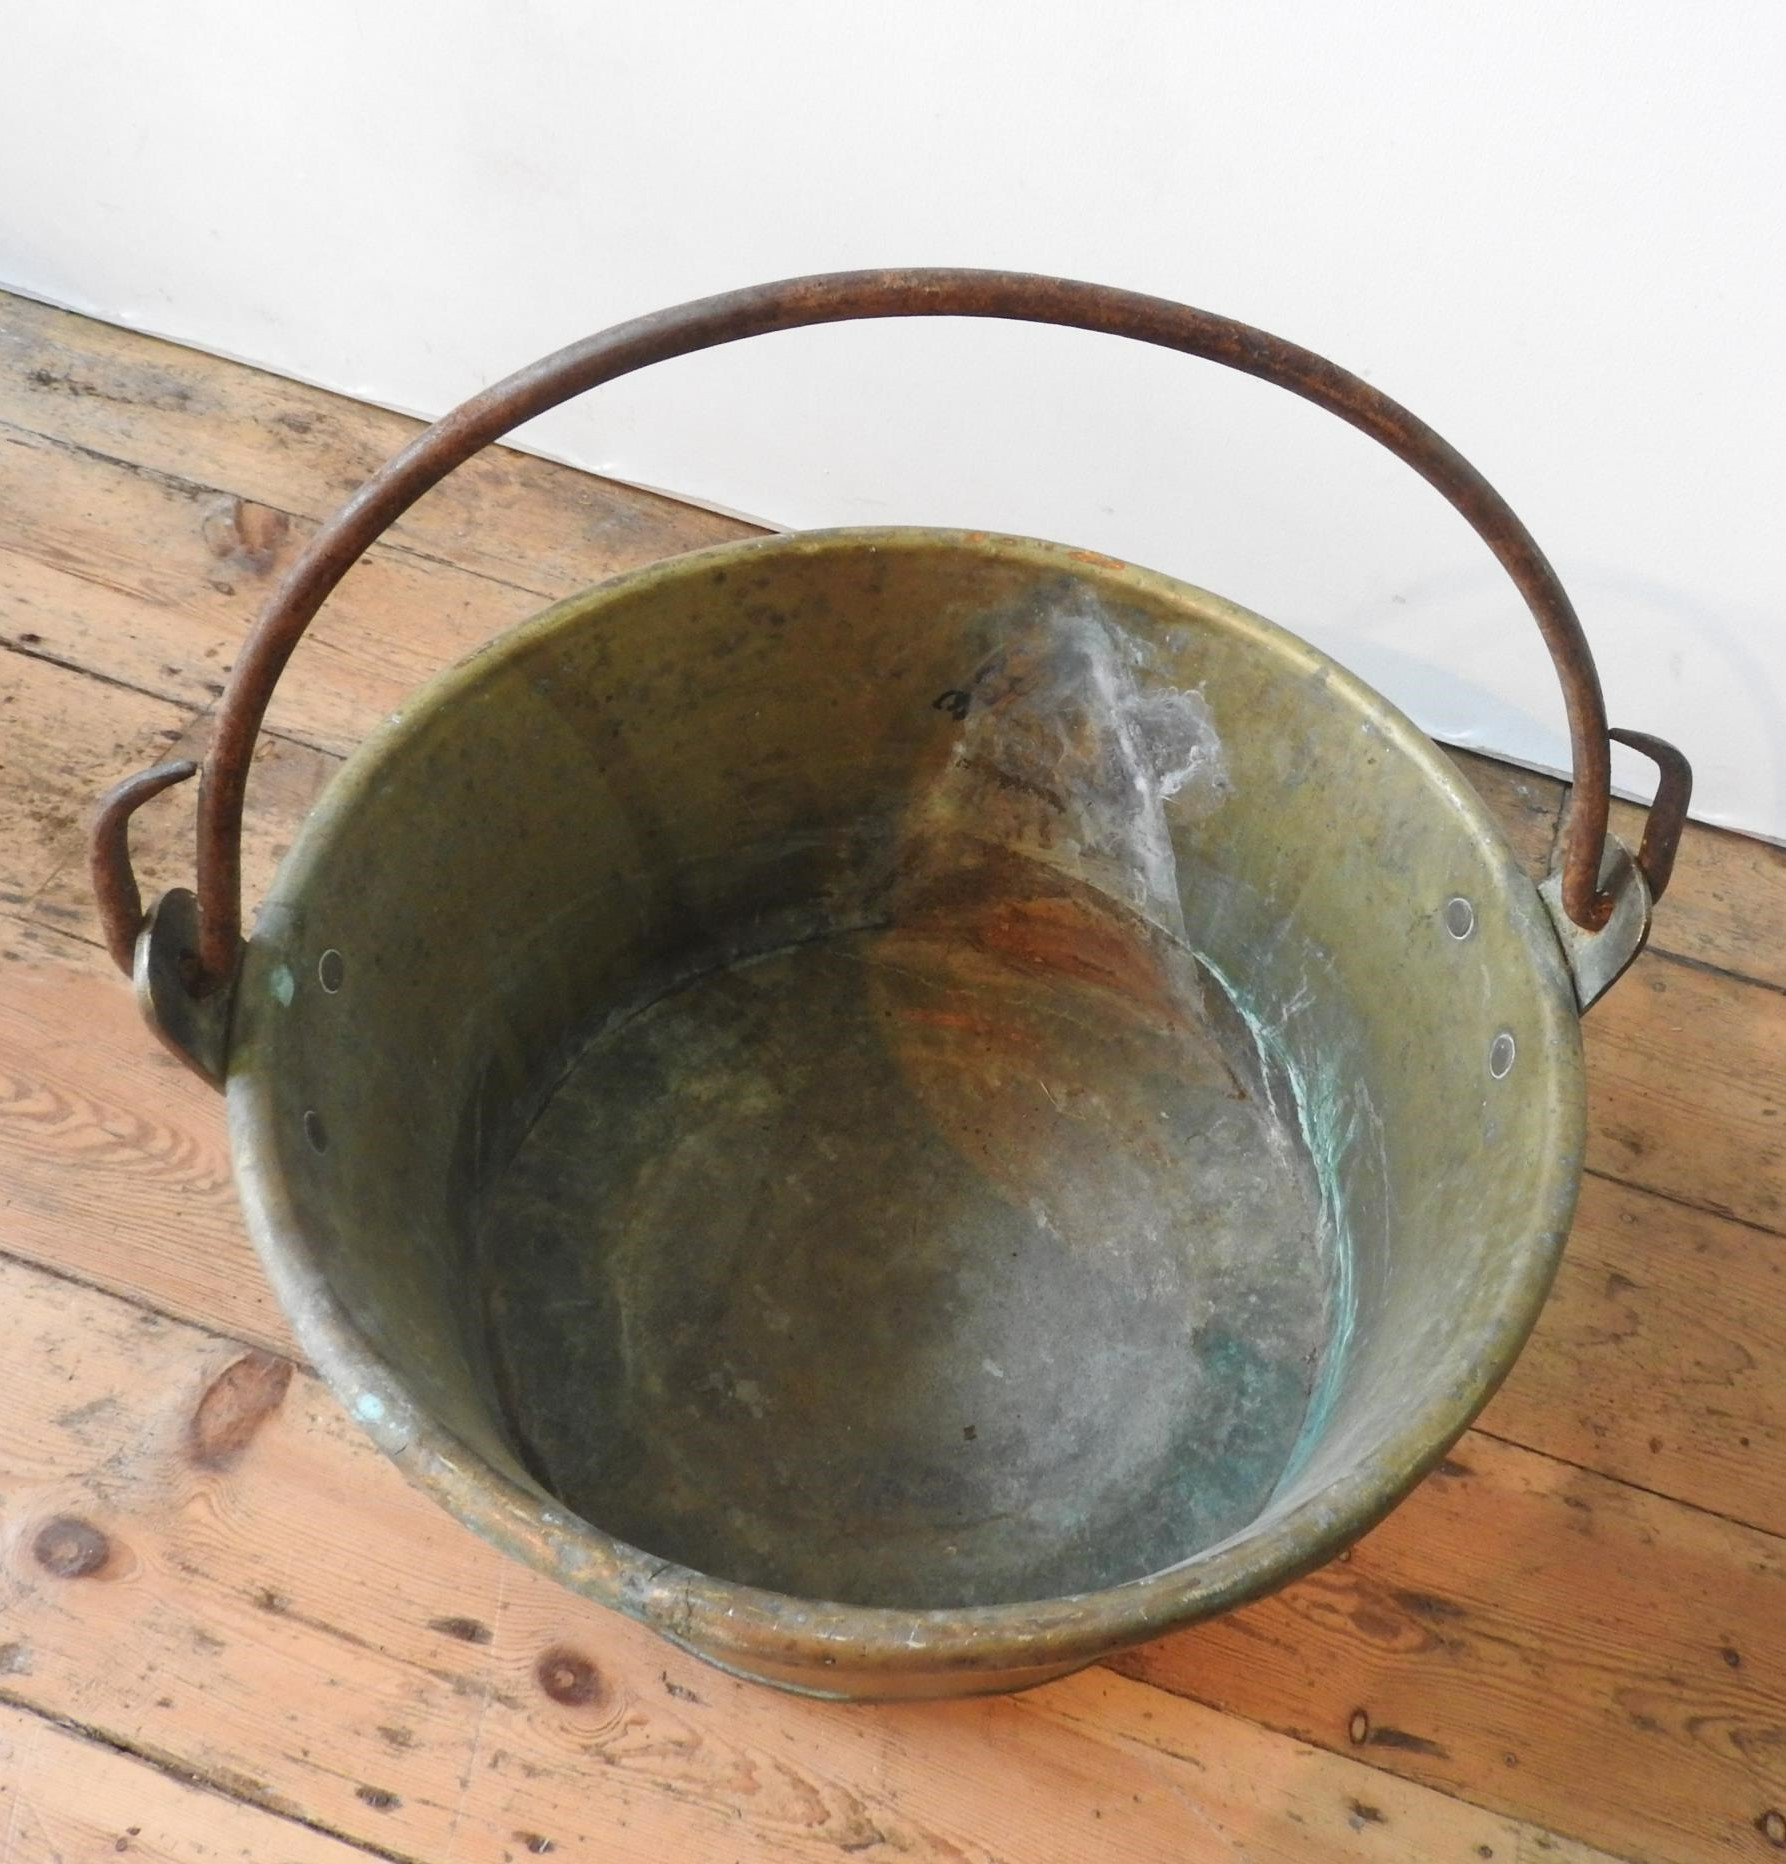 A CONTINENTAL RIVETED BRASS BUCKET WITH IRON RING HANDLE, 52cm dia - Image 2 of 2